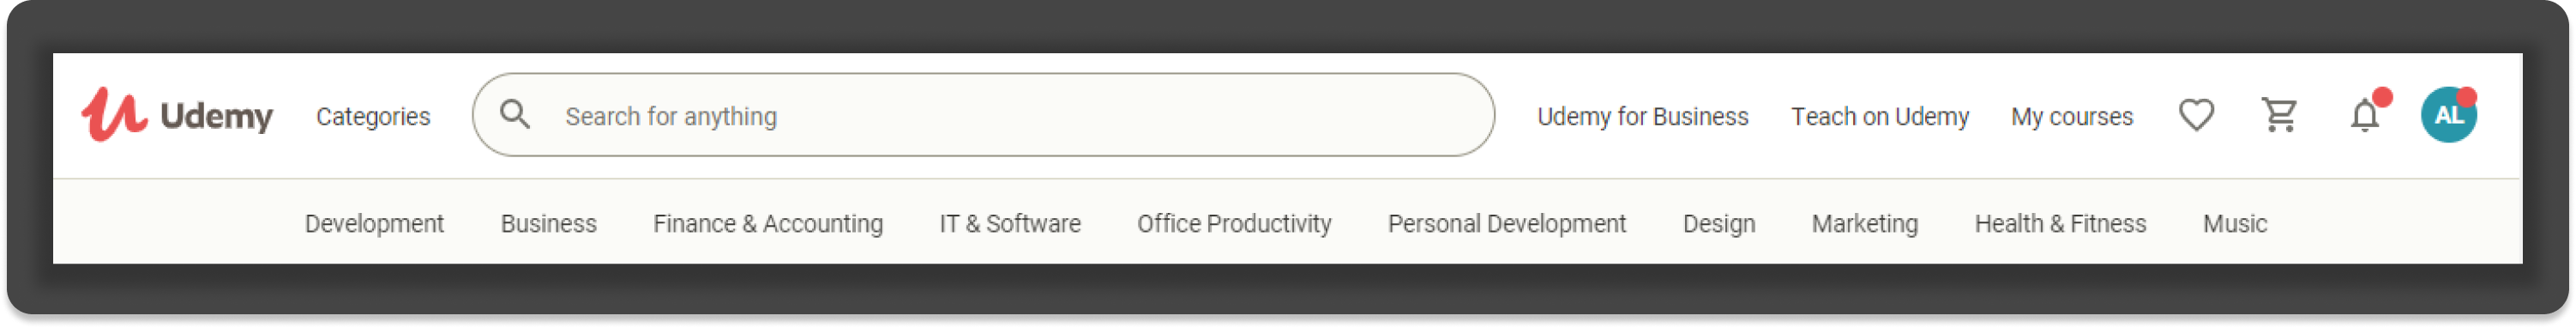 Udemy's current navigation menu incorporates content for four user types, resulting in a total lack of visual hierarchy.